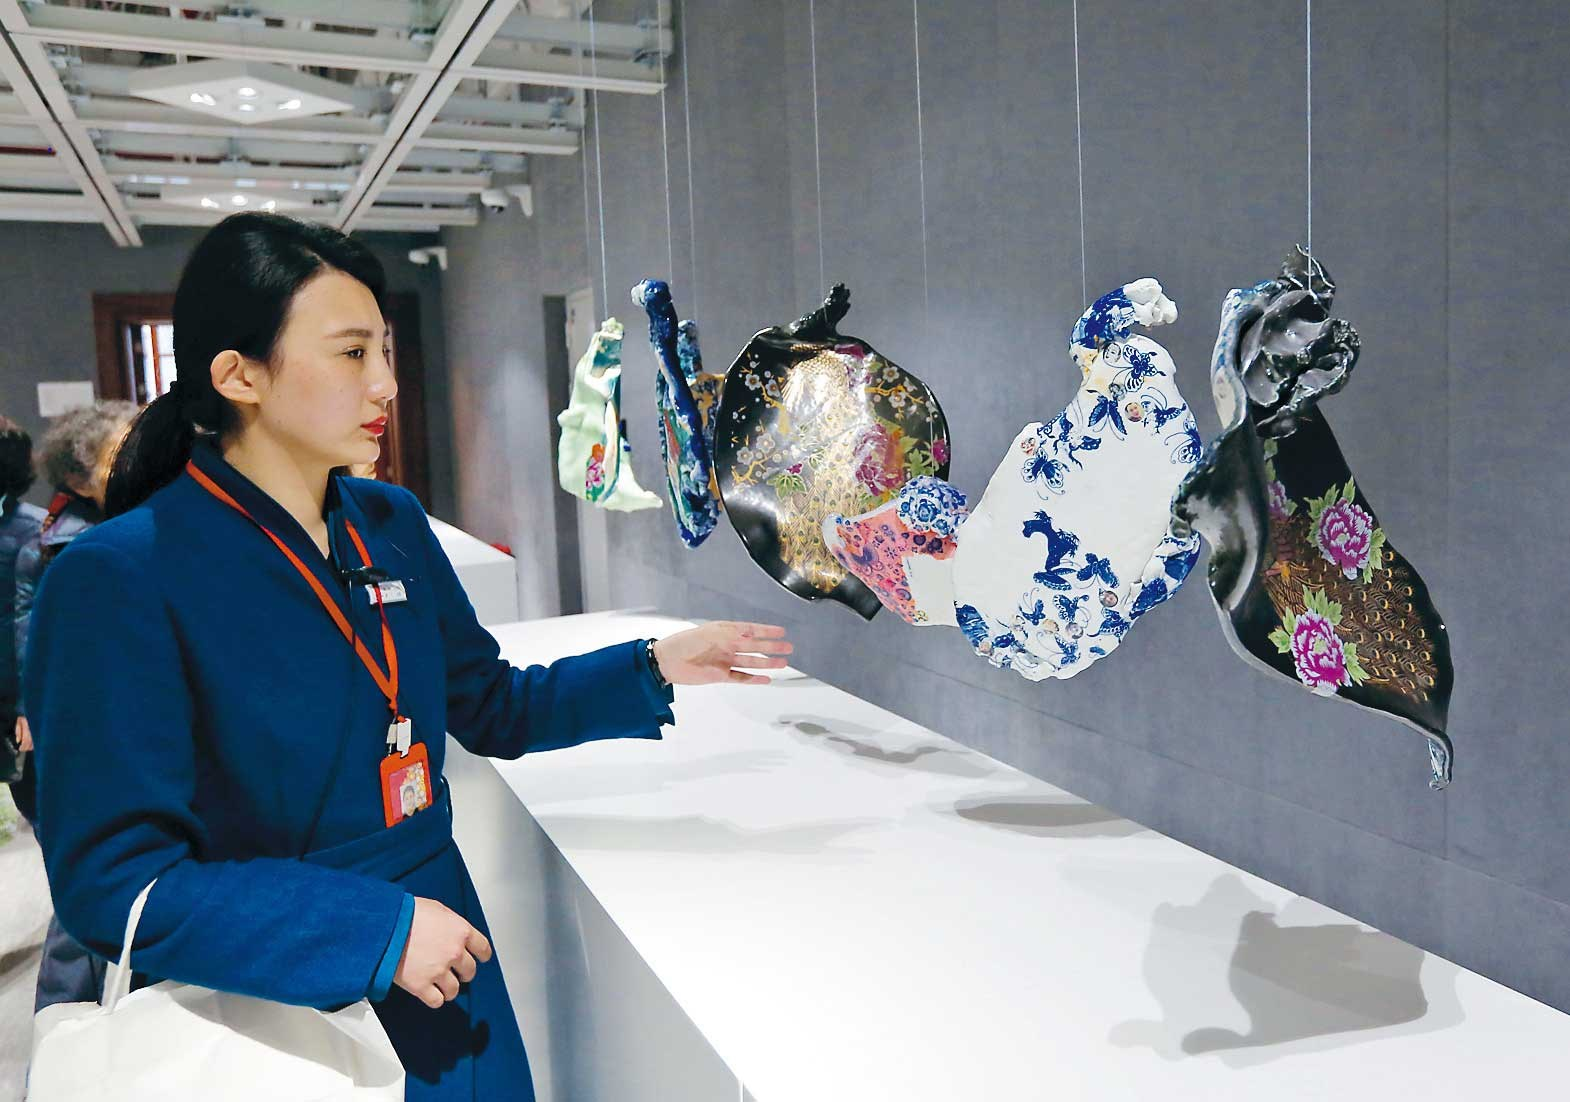 A woman studies exhibits at the Great World Center on downtown Xizang Road during a trial operation yesterday. The renovated exhibition center will open to the public on March 31. Tickets cost 60 yuan (US$8.70). — Wang Rongjiang